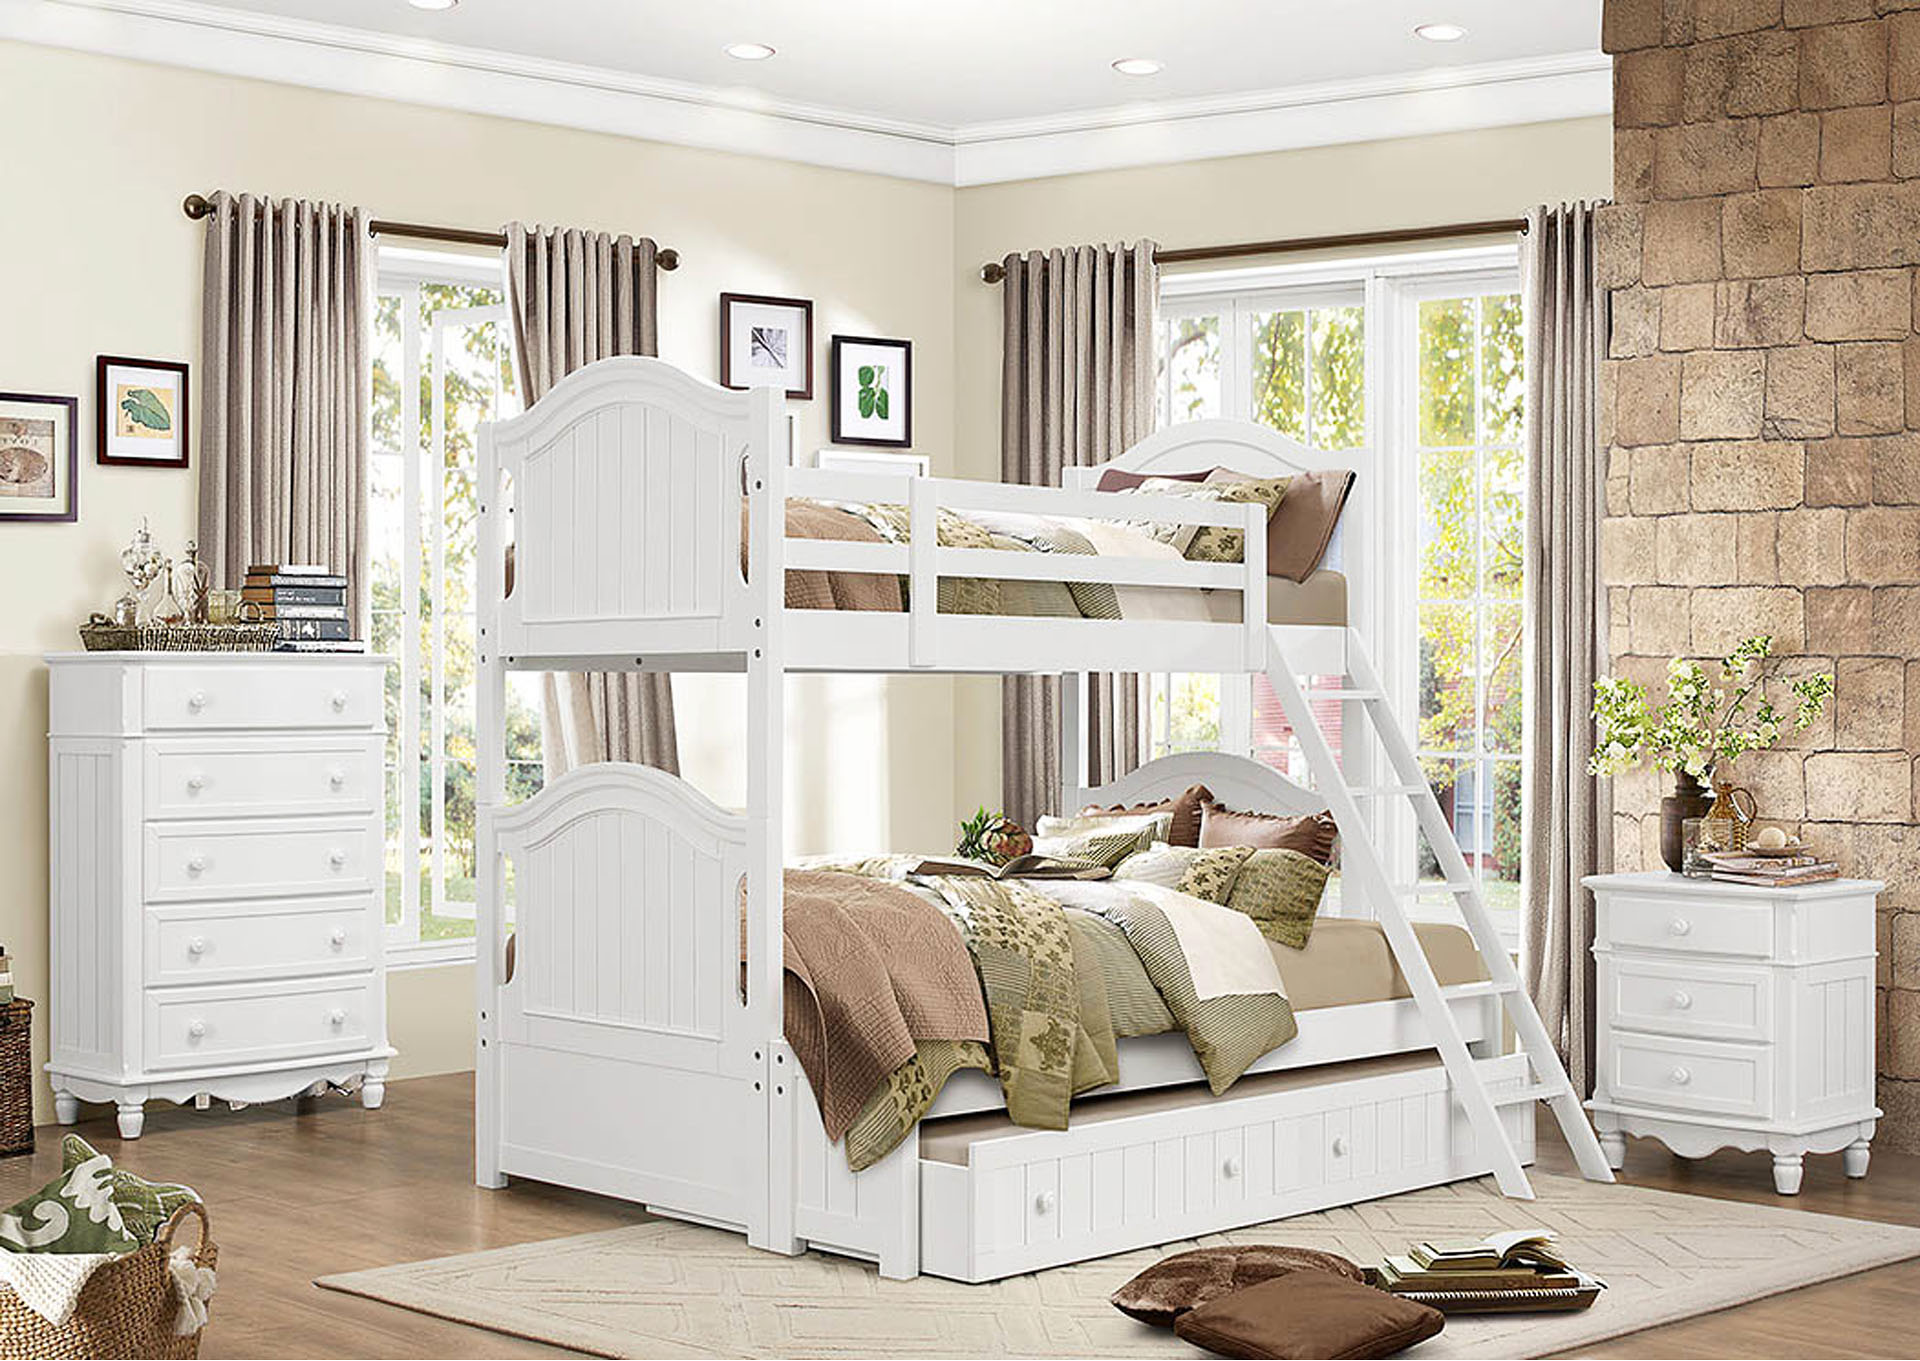 Clementine White Twin Bunk Bed,Homelegance